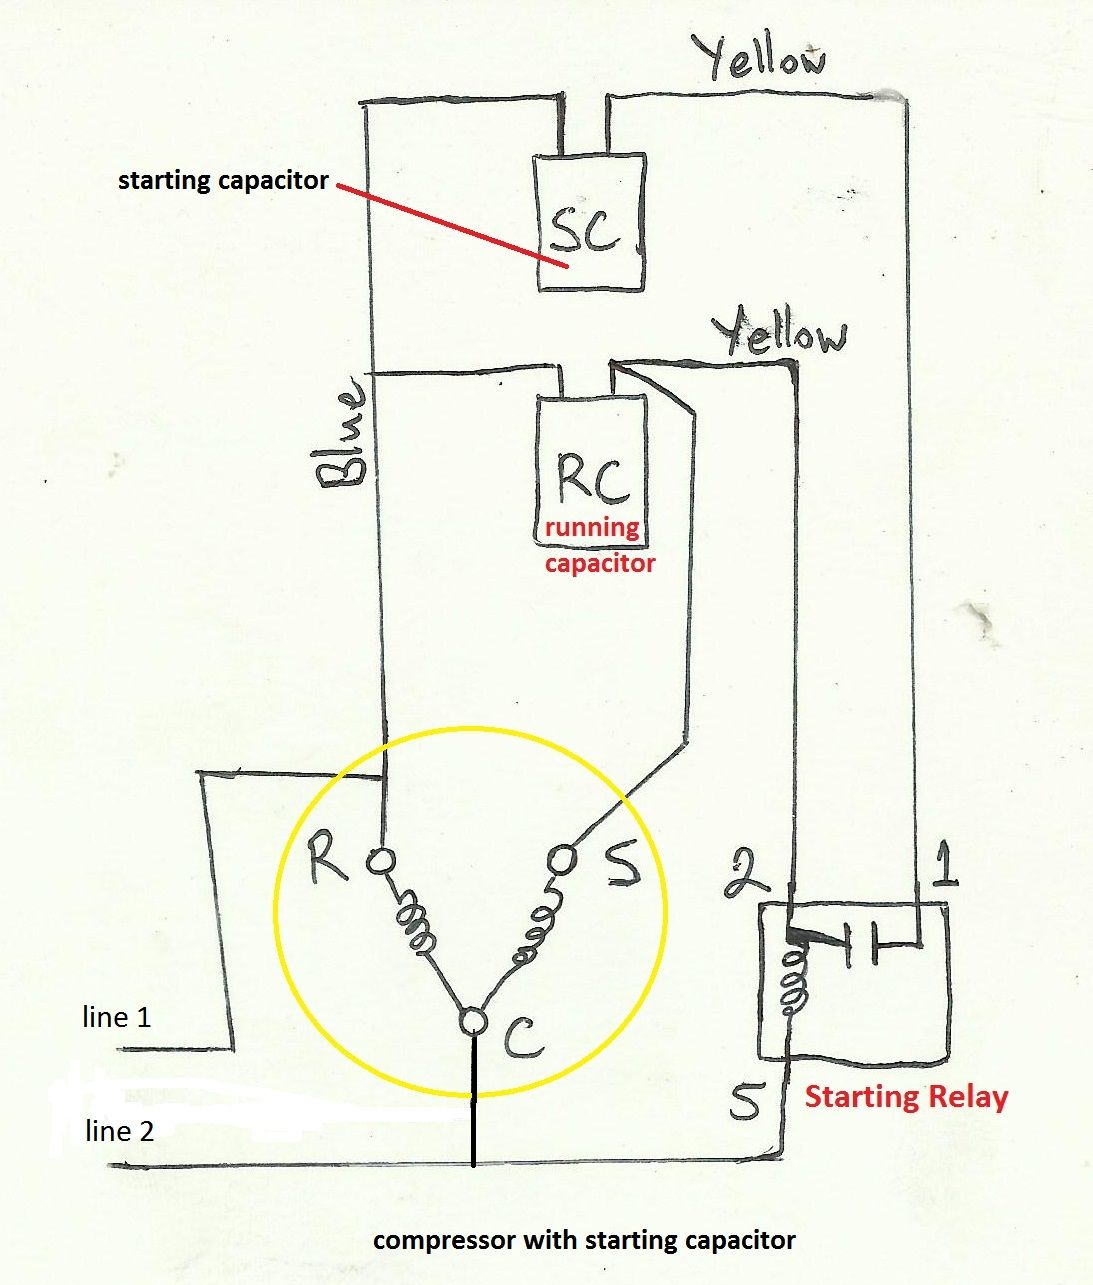 50528d800da7d87408a55b396c2aa5e6 bel air compressor wiring diagram air compressor pump replacement air compressor wiring harness at reclaimingppi.co